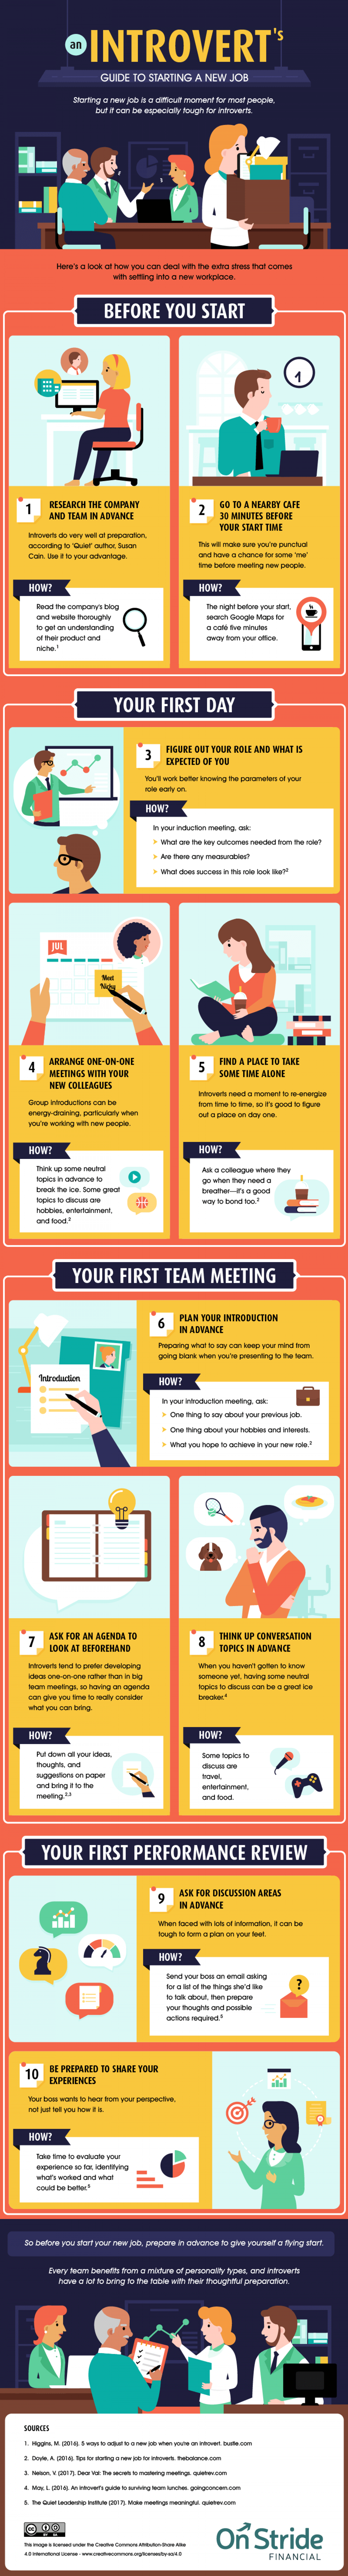 An Introvert's Guide to Starting A New Job Infographic